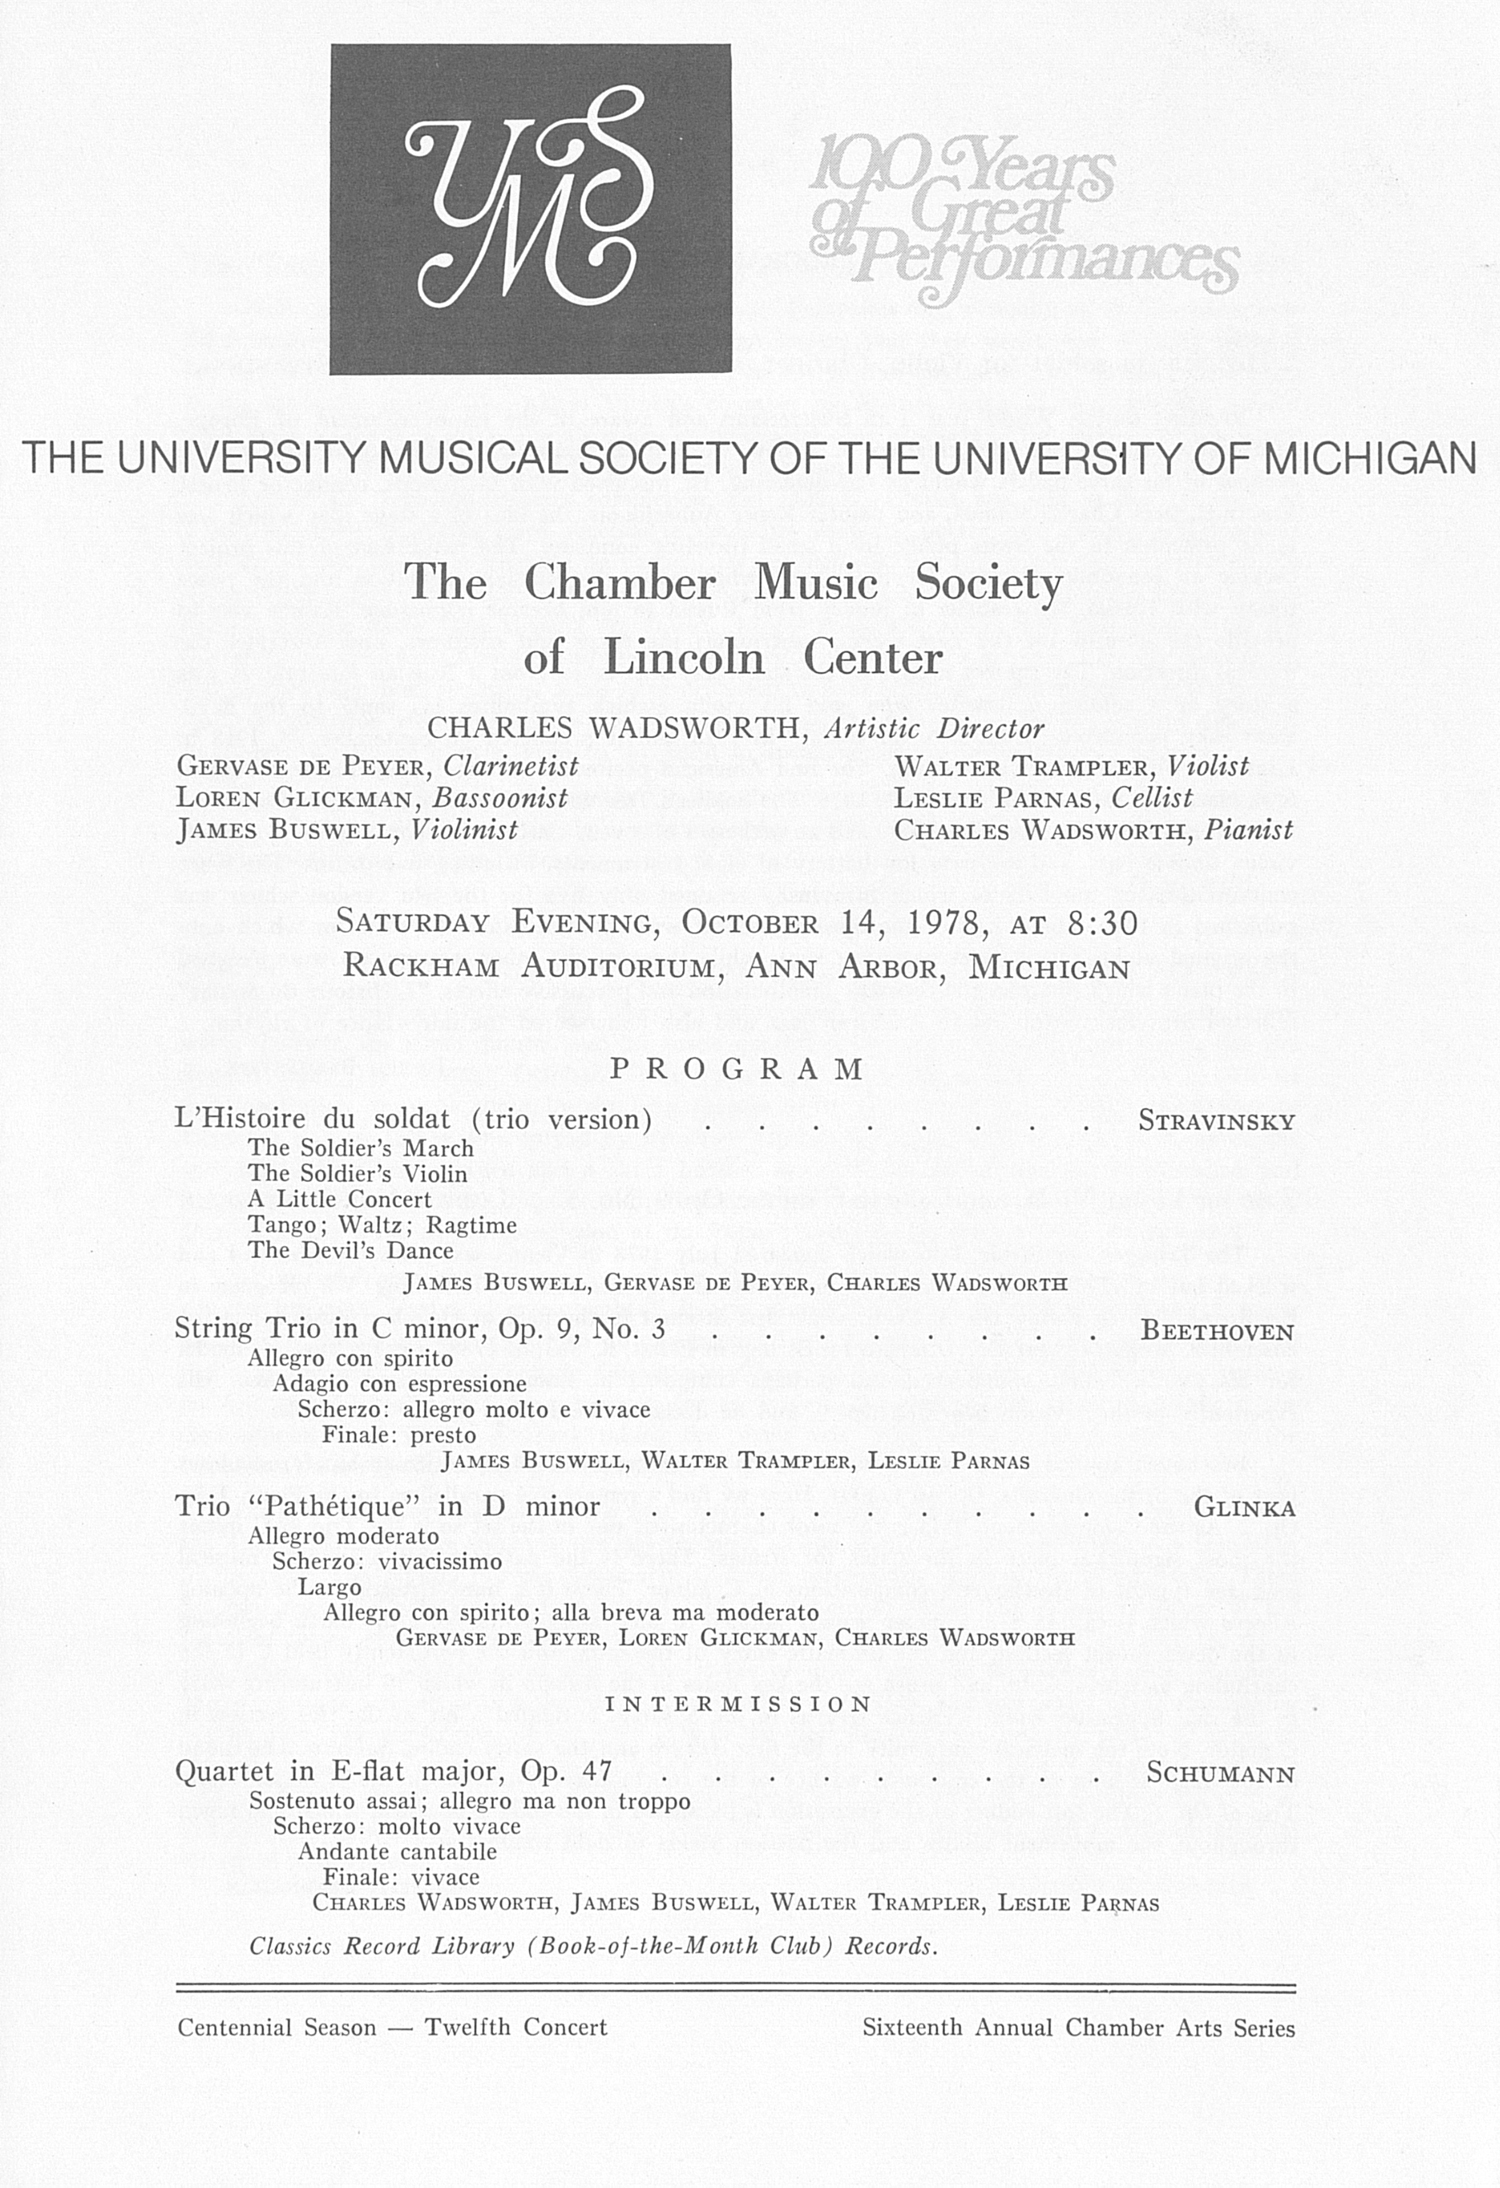 UMS Concert Program, October 14, 1978: The Chamber Music Society Of Lincoln Center -- Charles Wadsworth image